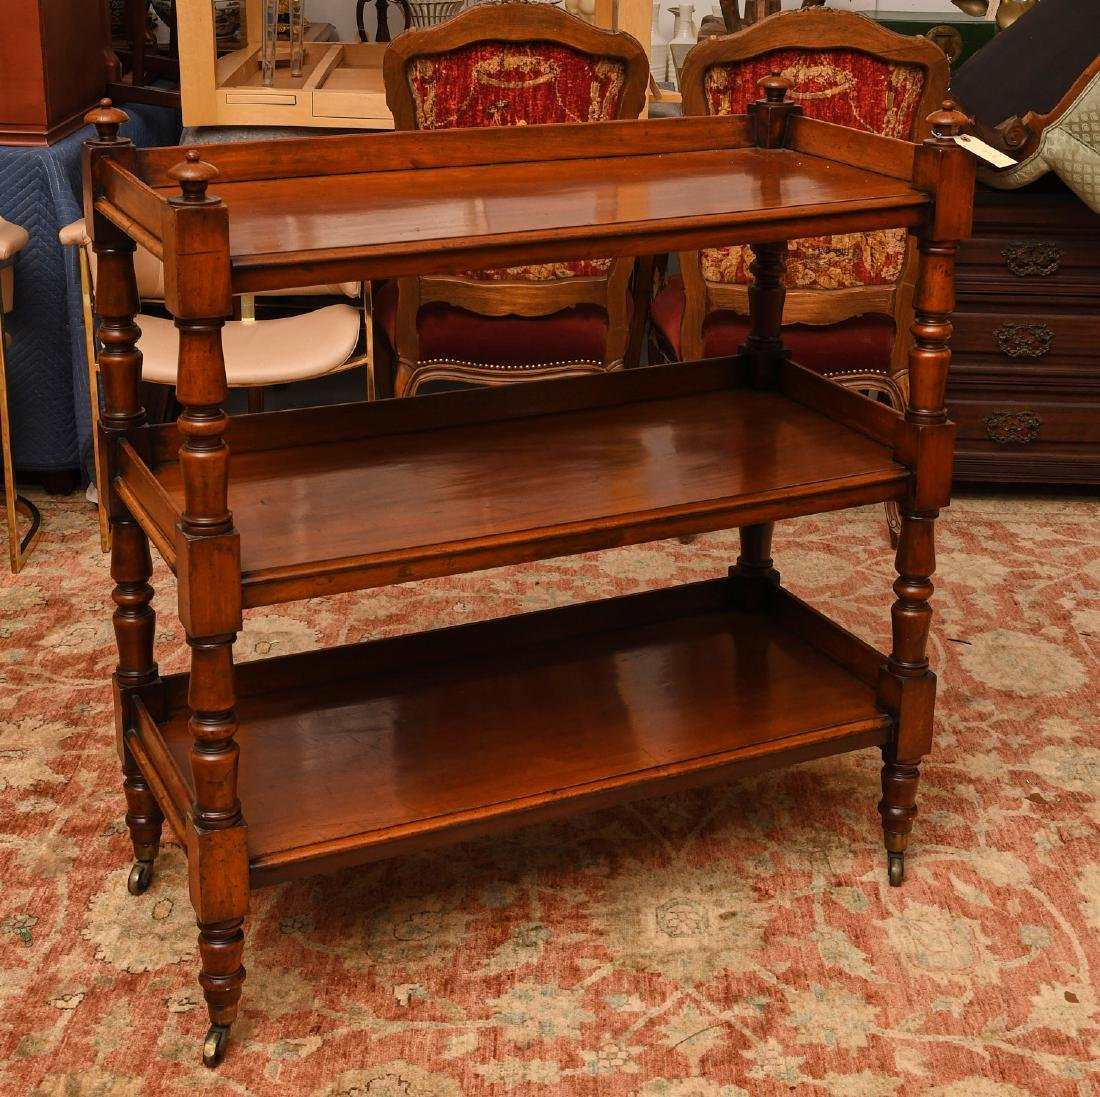 Sheraton style mahogany serving trolley